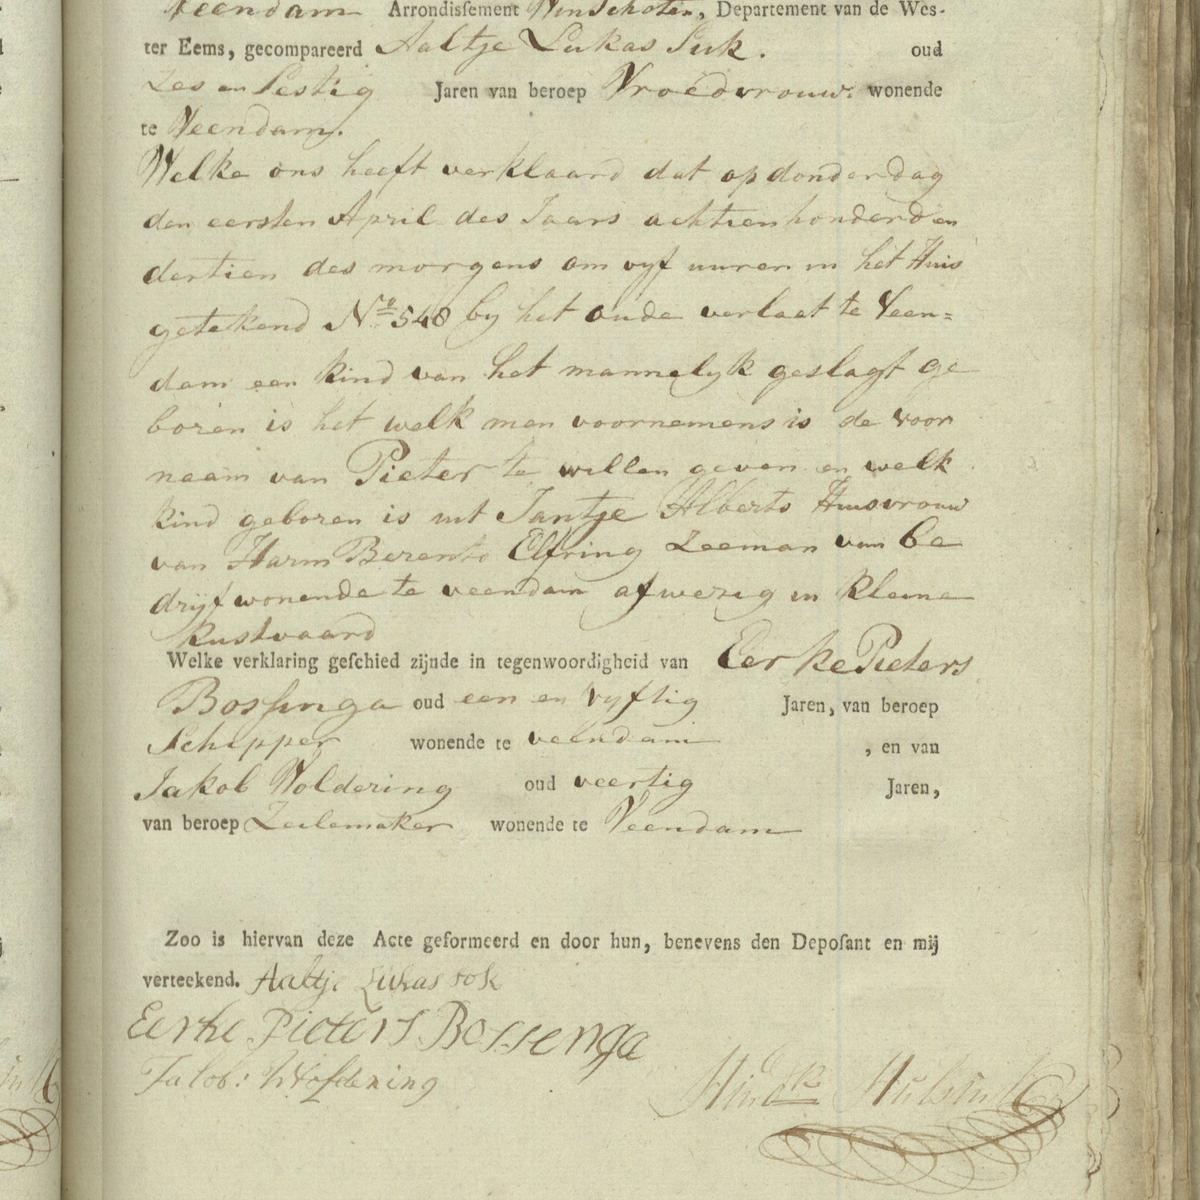 Civil registry of births, Veendam, 1813, record 36